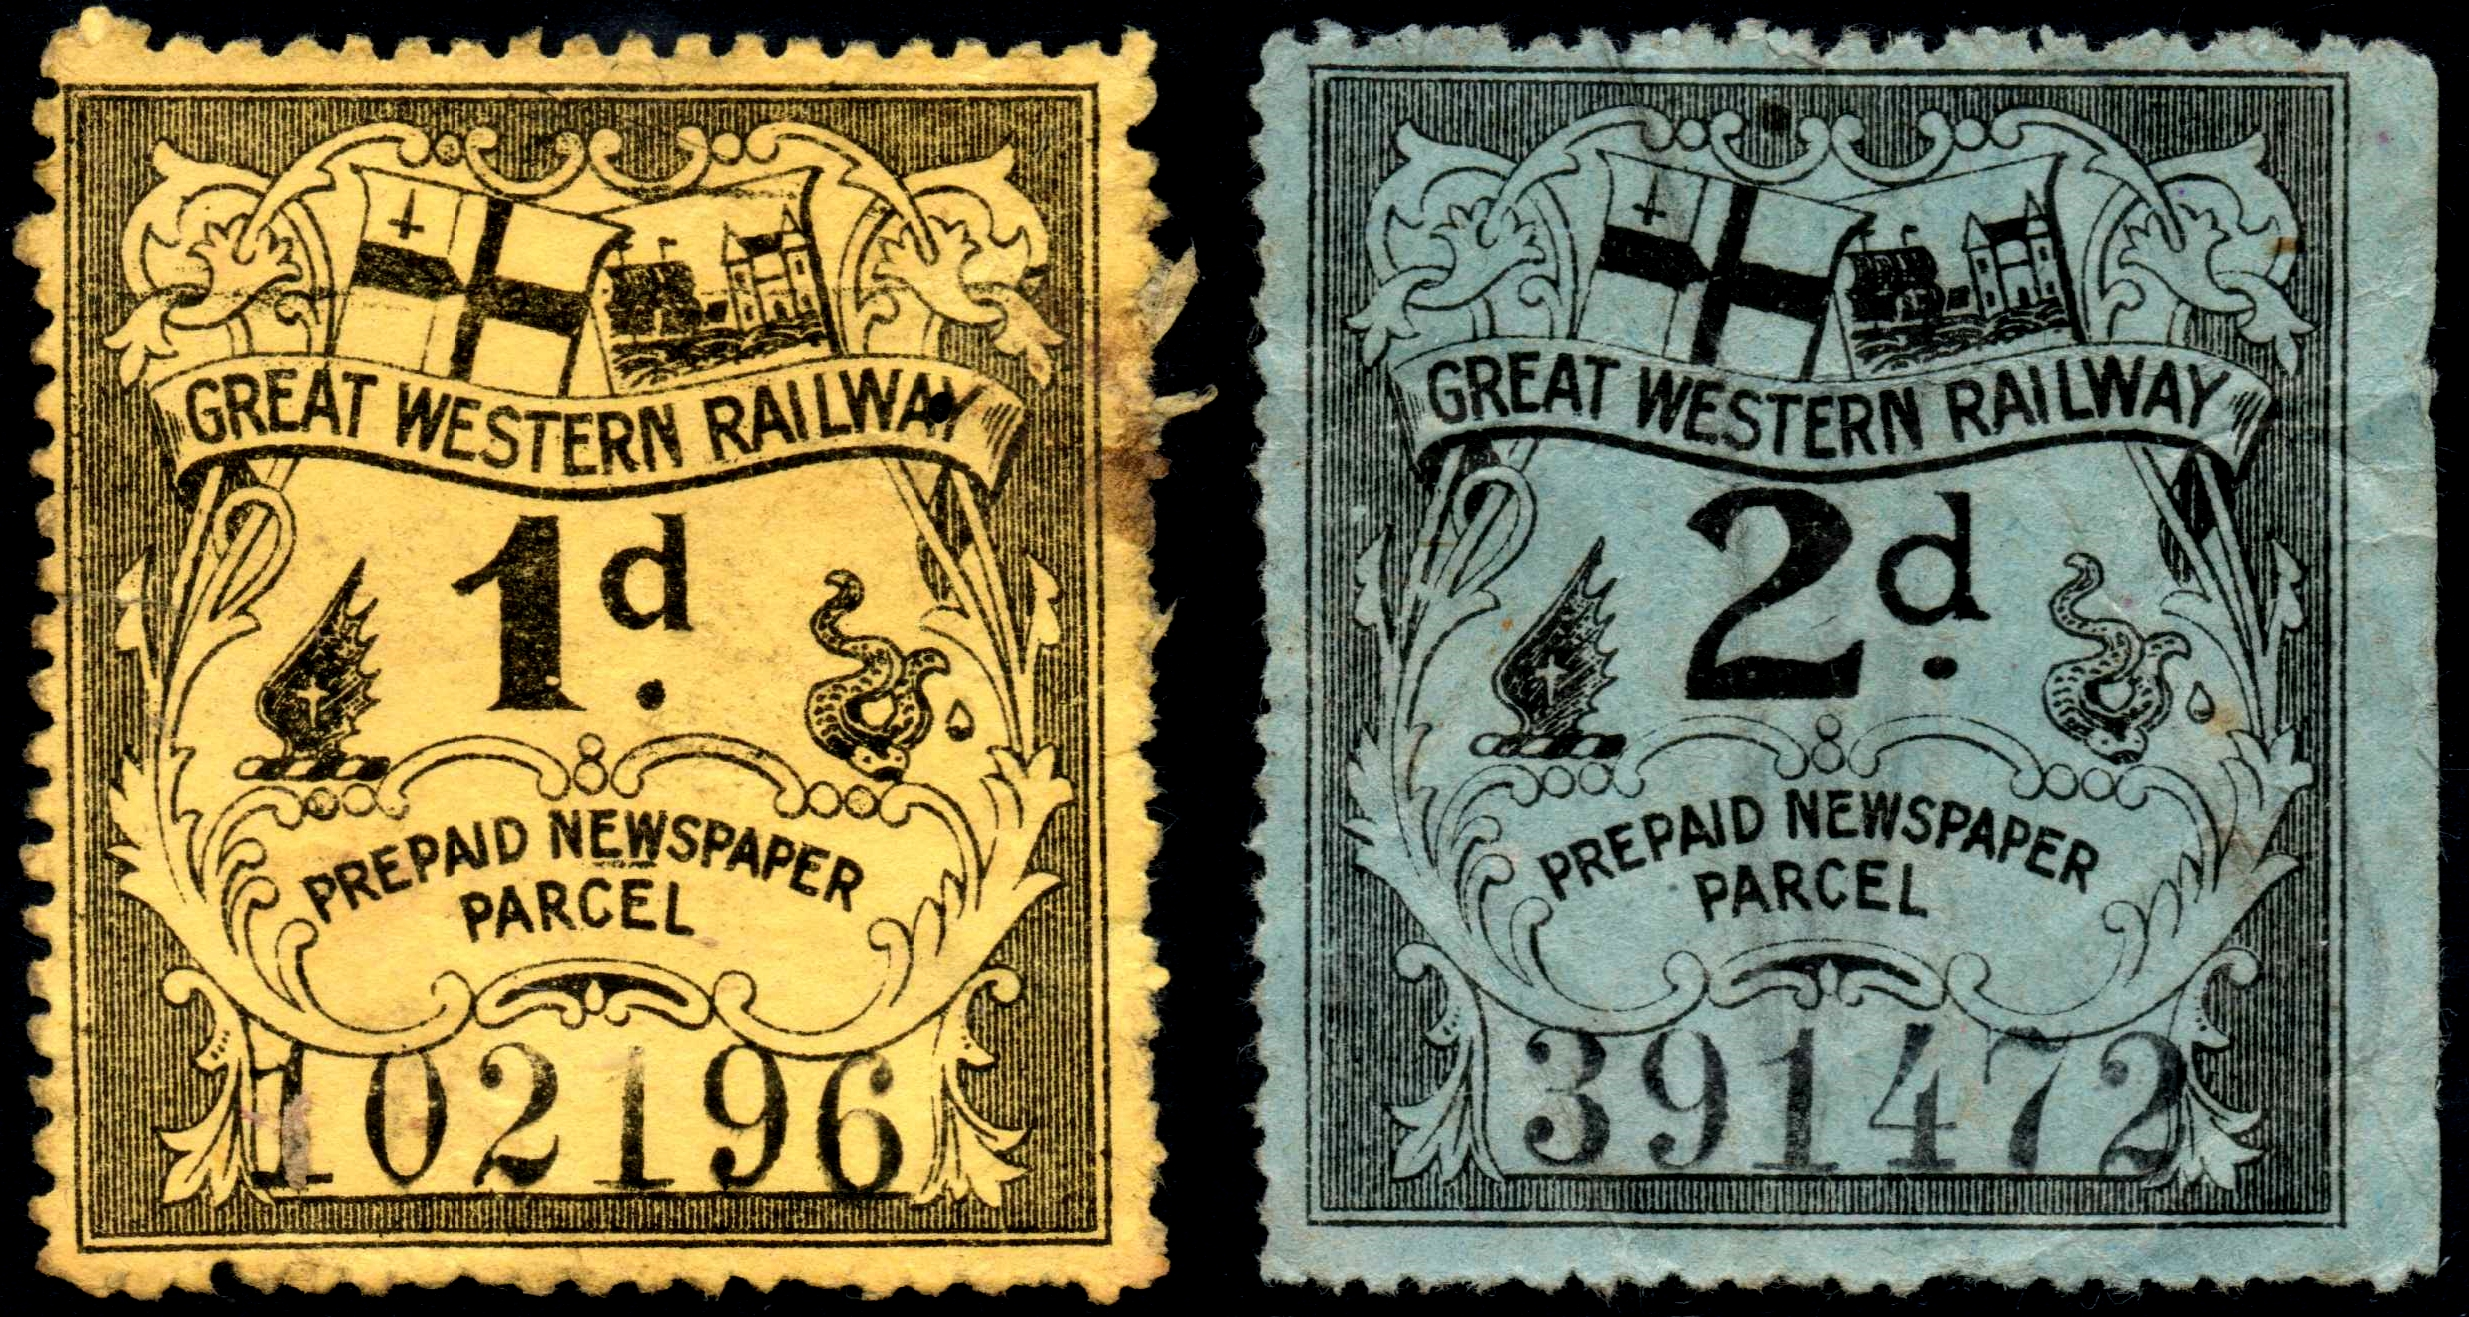 Great Western Railway prepaid newspaper parcel stamps